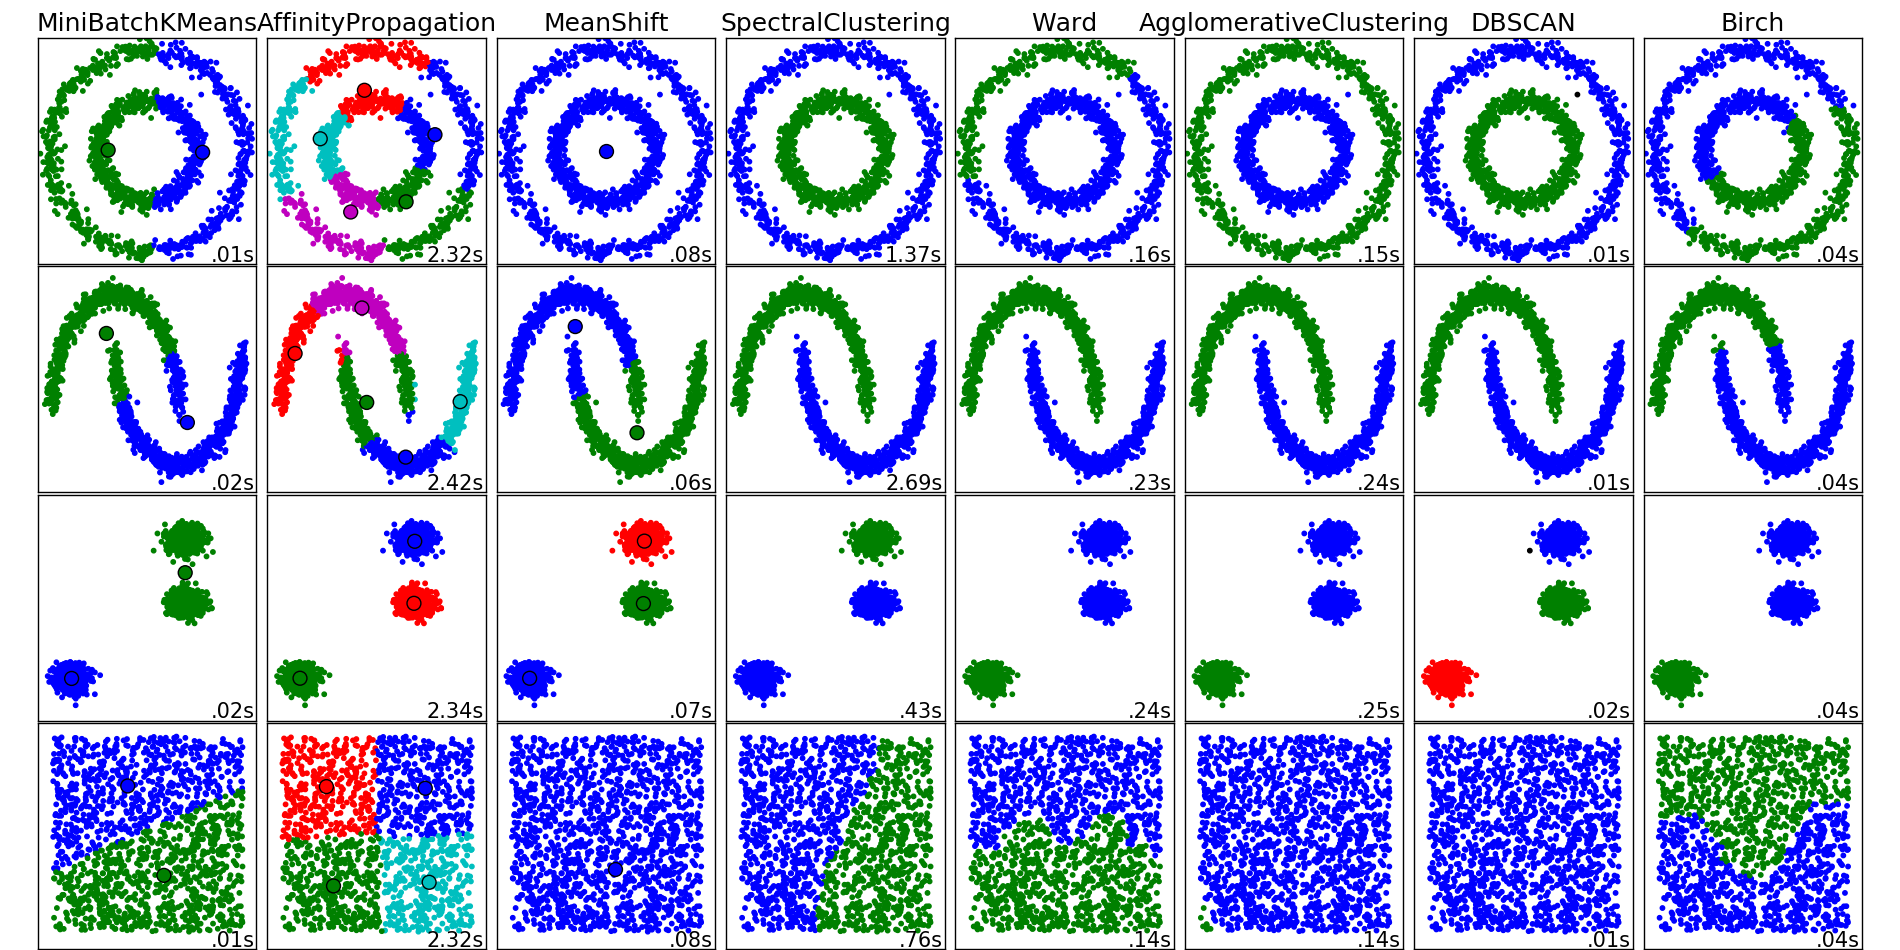 Comparing different clustering algorithms on toy datasets